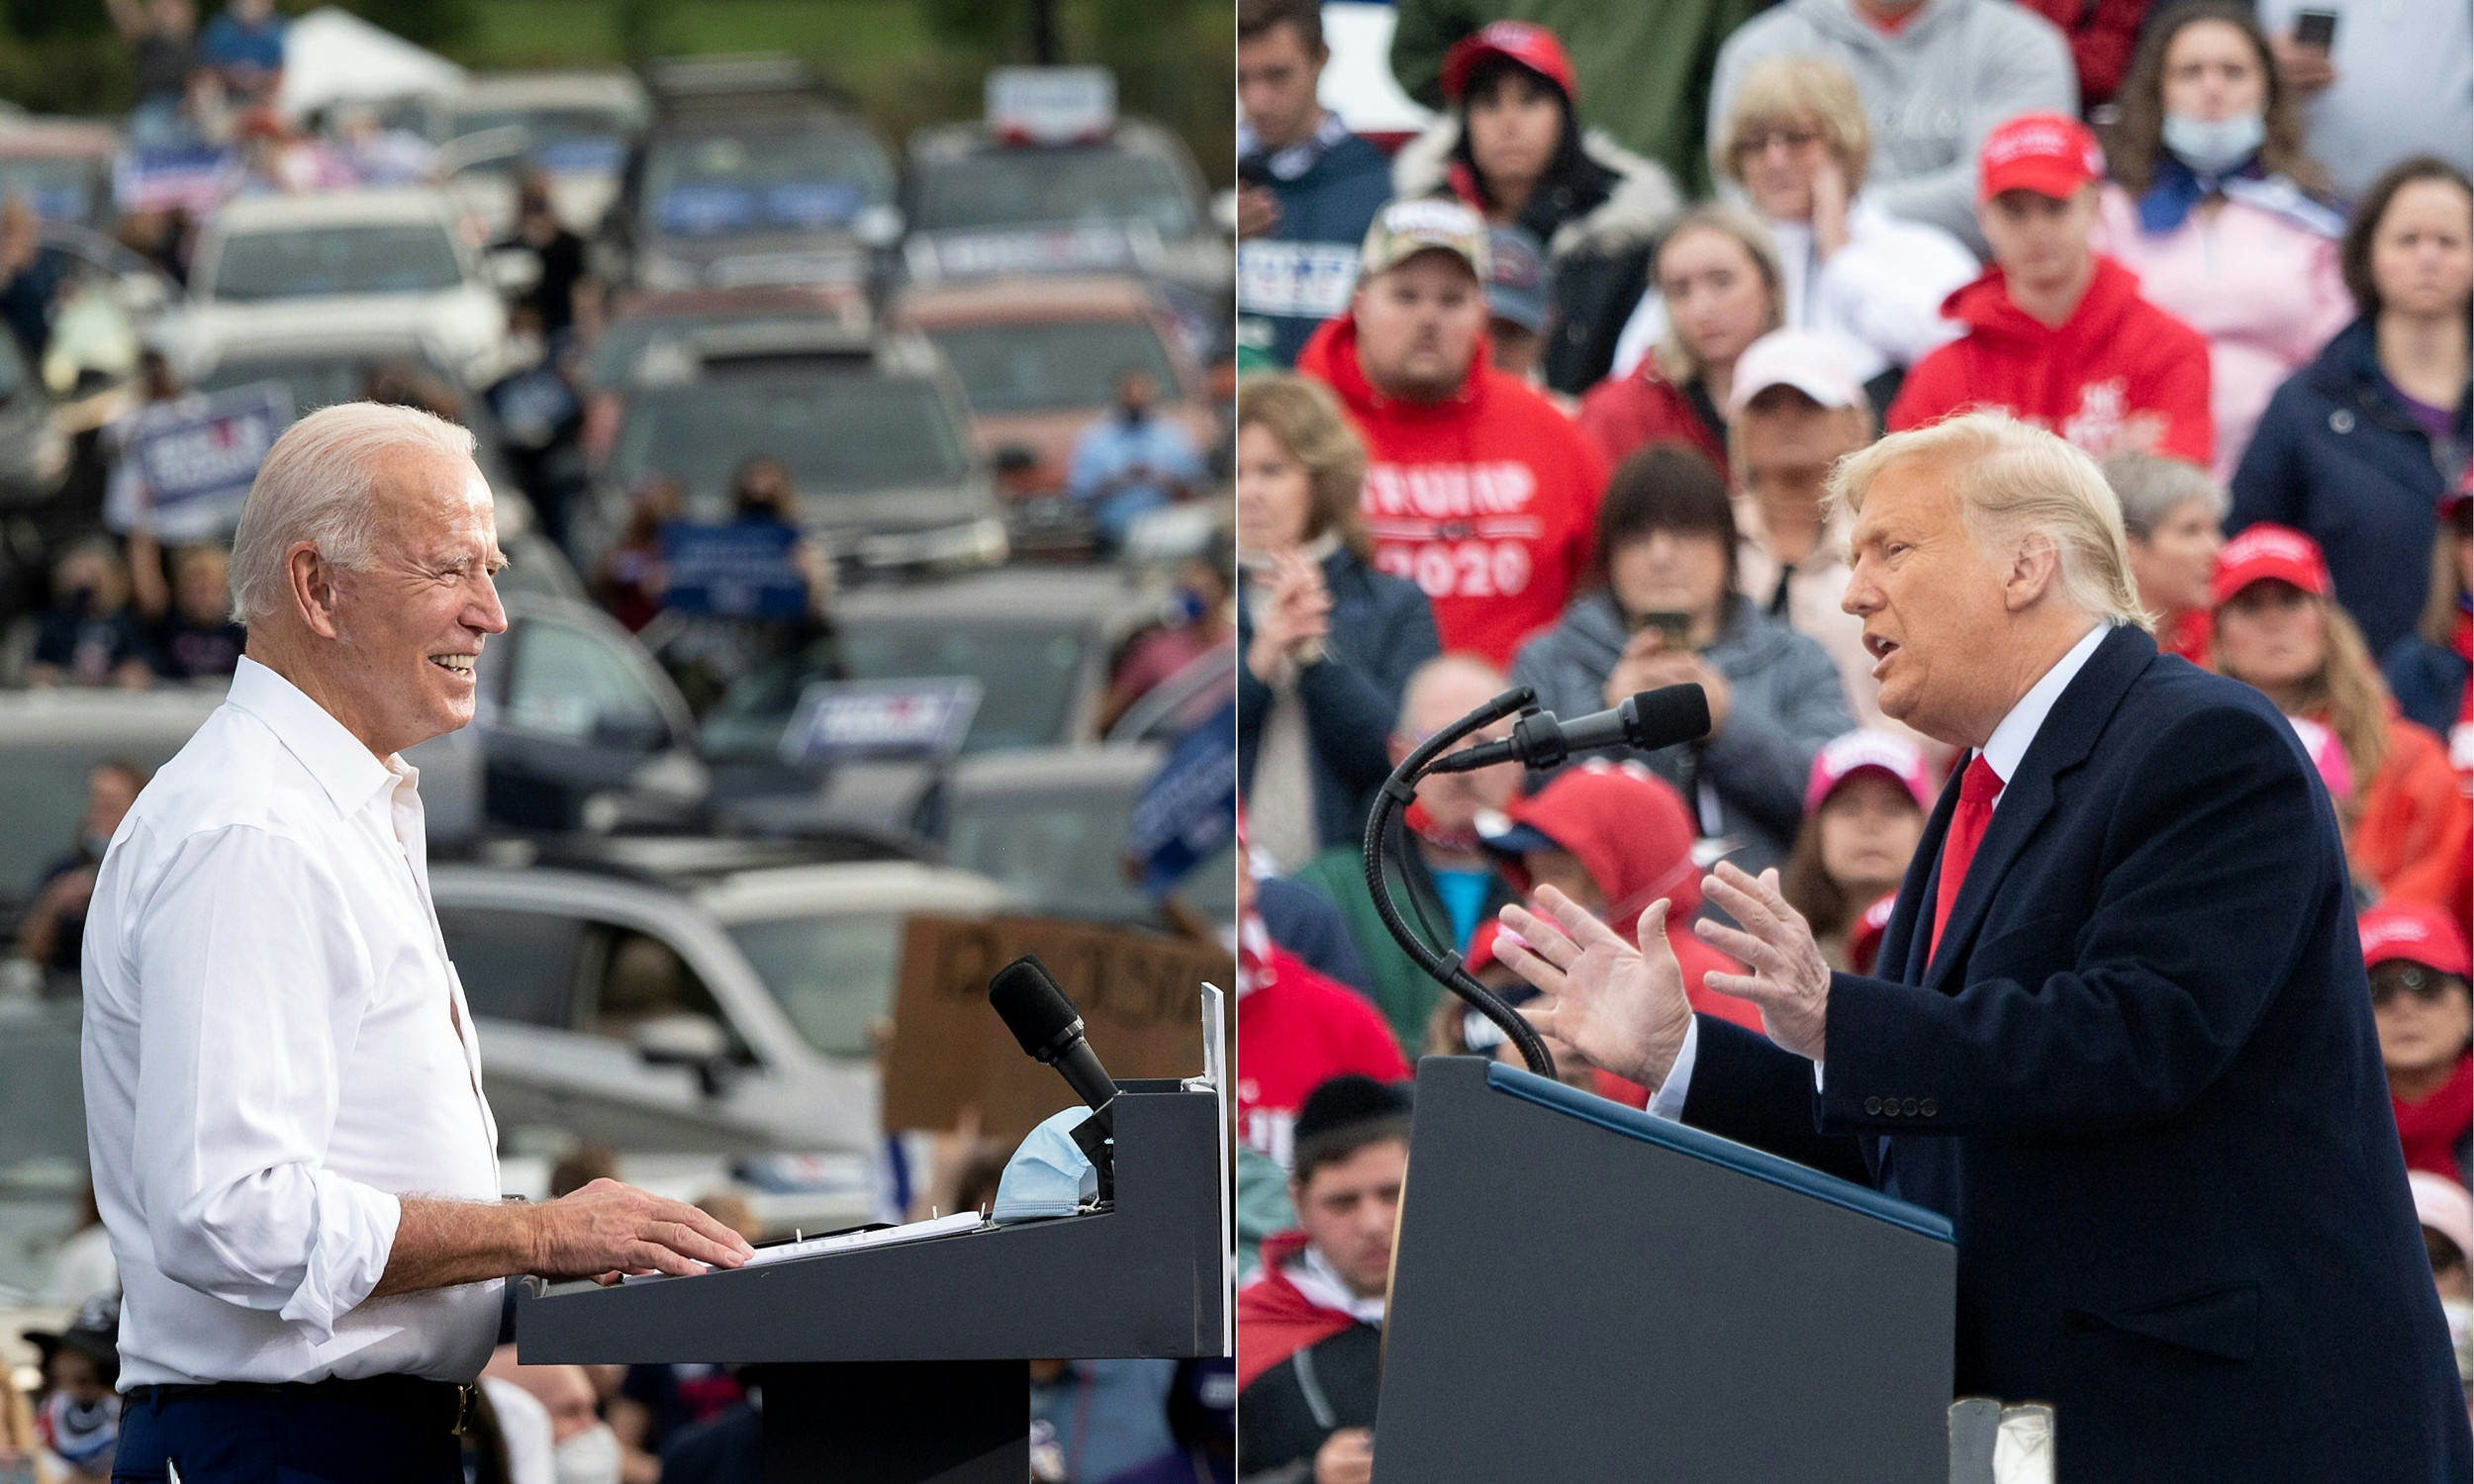 Trump trails Biden by 8% in Fox News national poll of likely voters